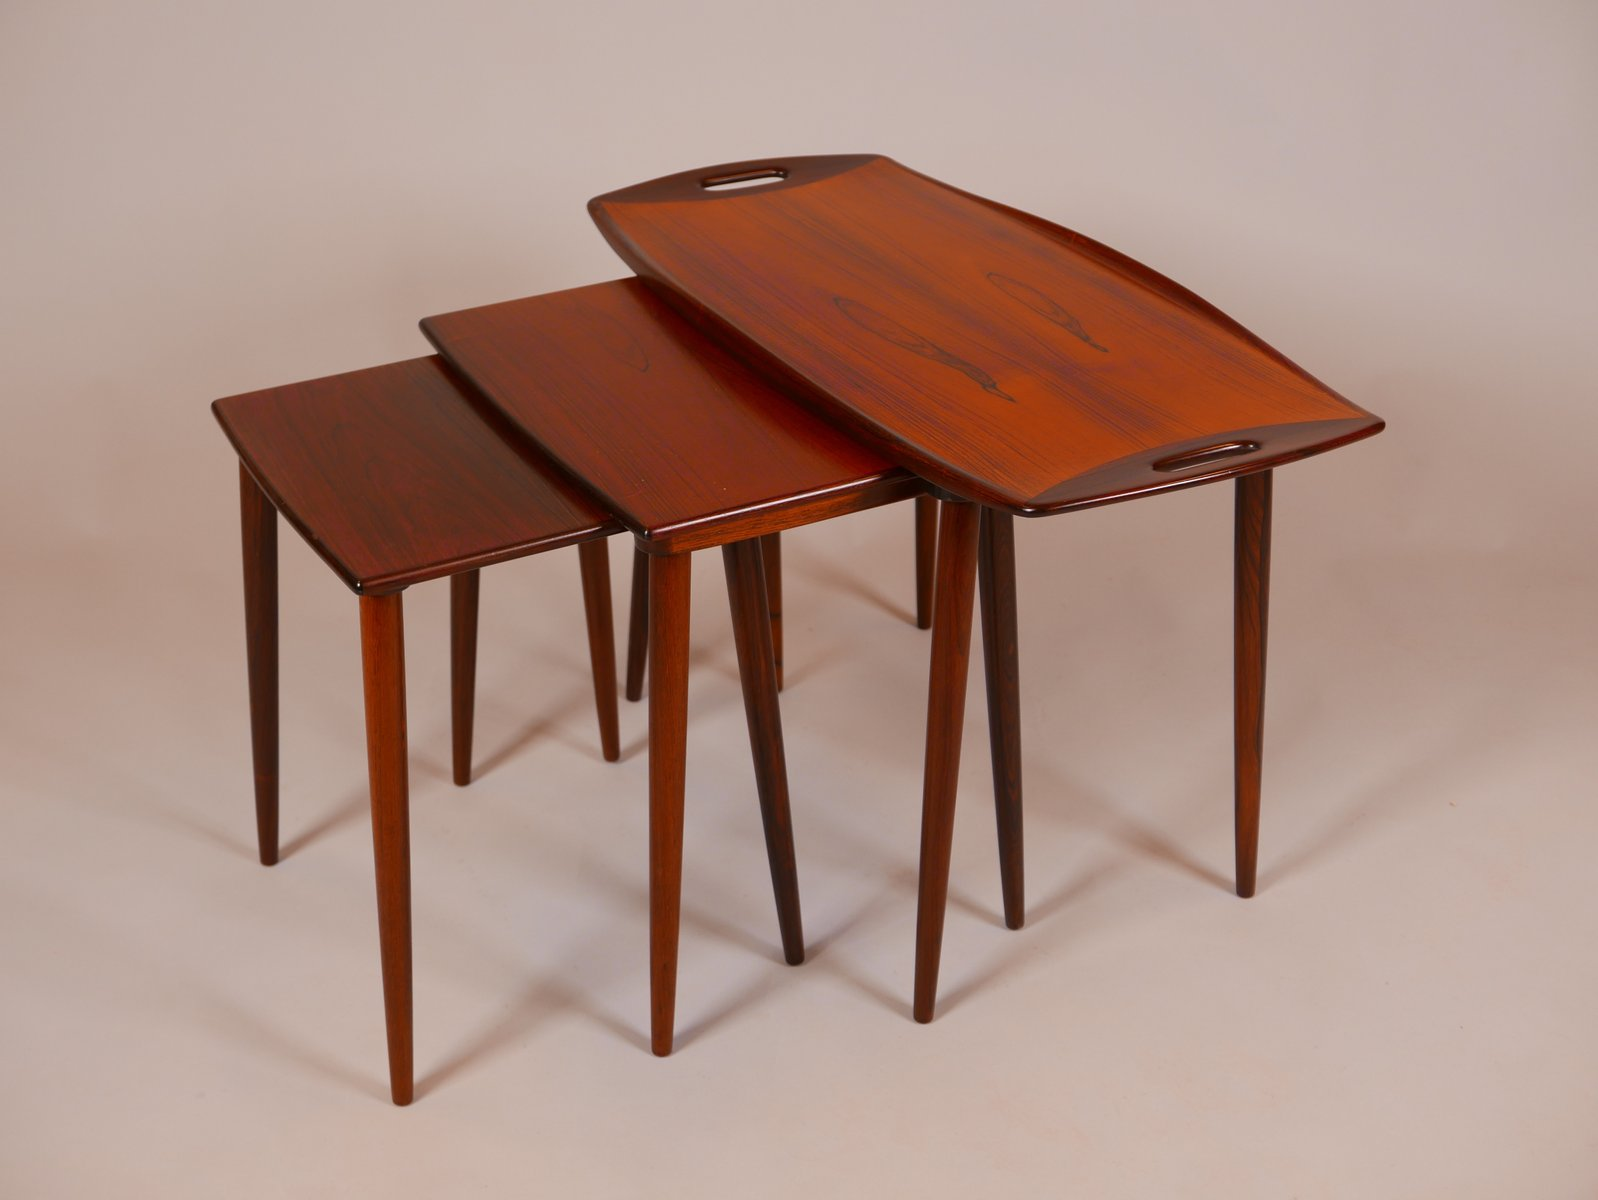 Nesting Tables Nesting Tables By Jens Quistgaard Set Of 3 For Sale At Pamono